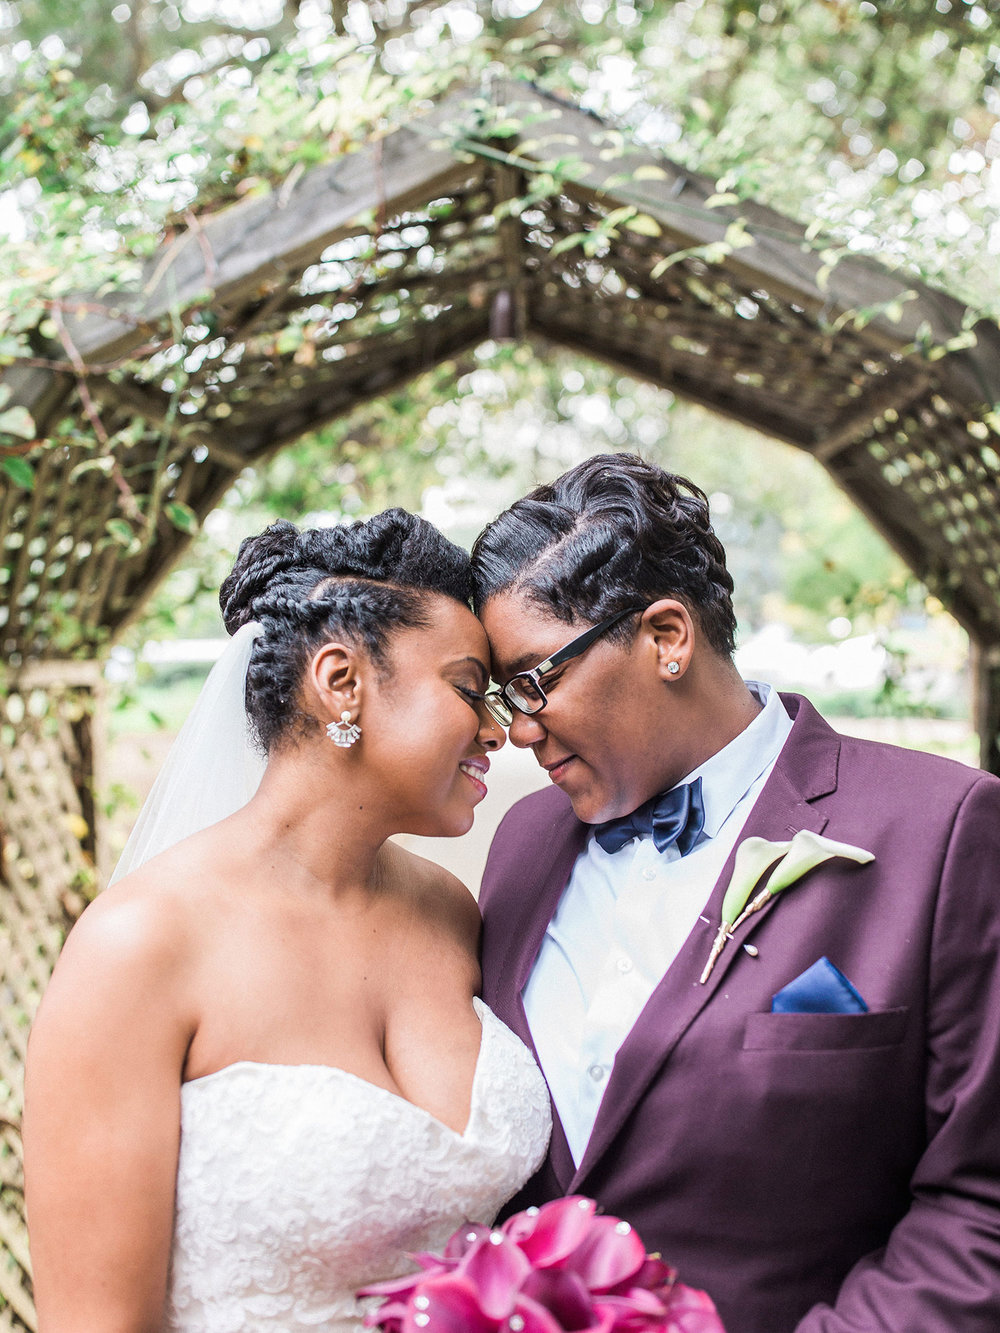 Newlywed couple smiling and touching foreheads together under tree Apollo Fotografie San Francisco California